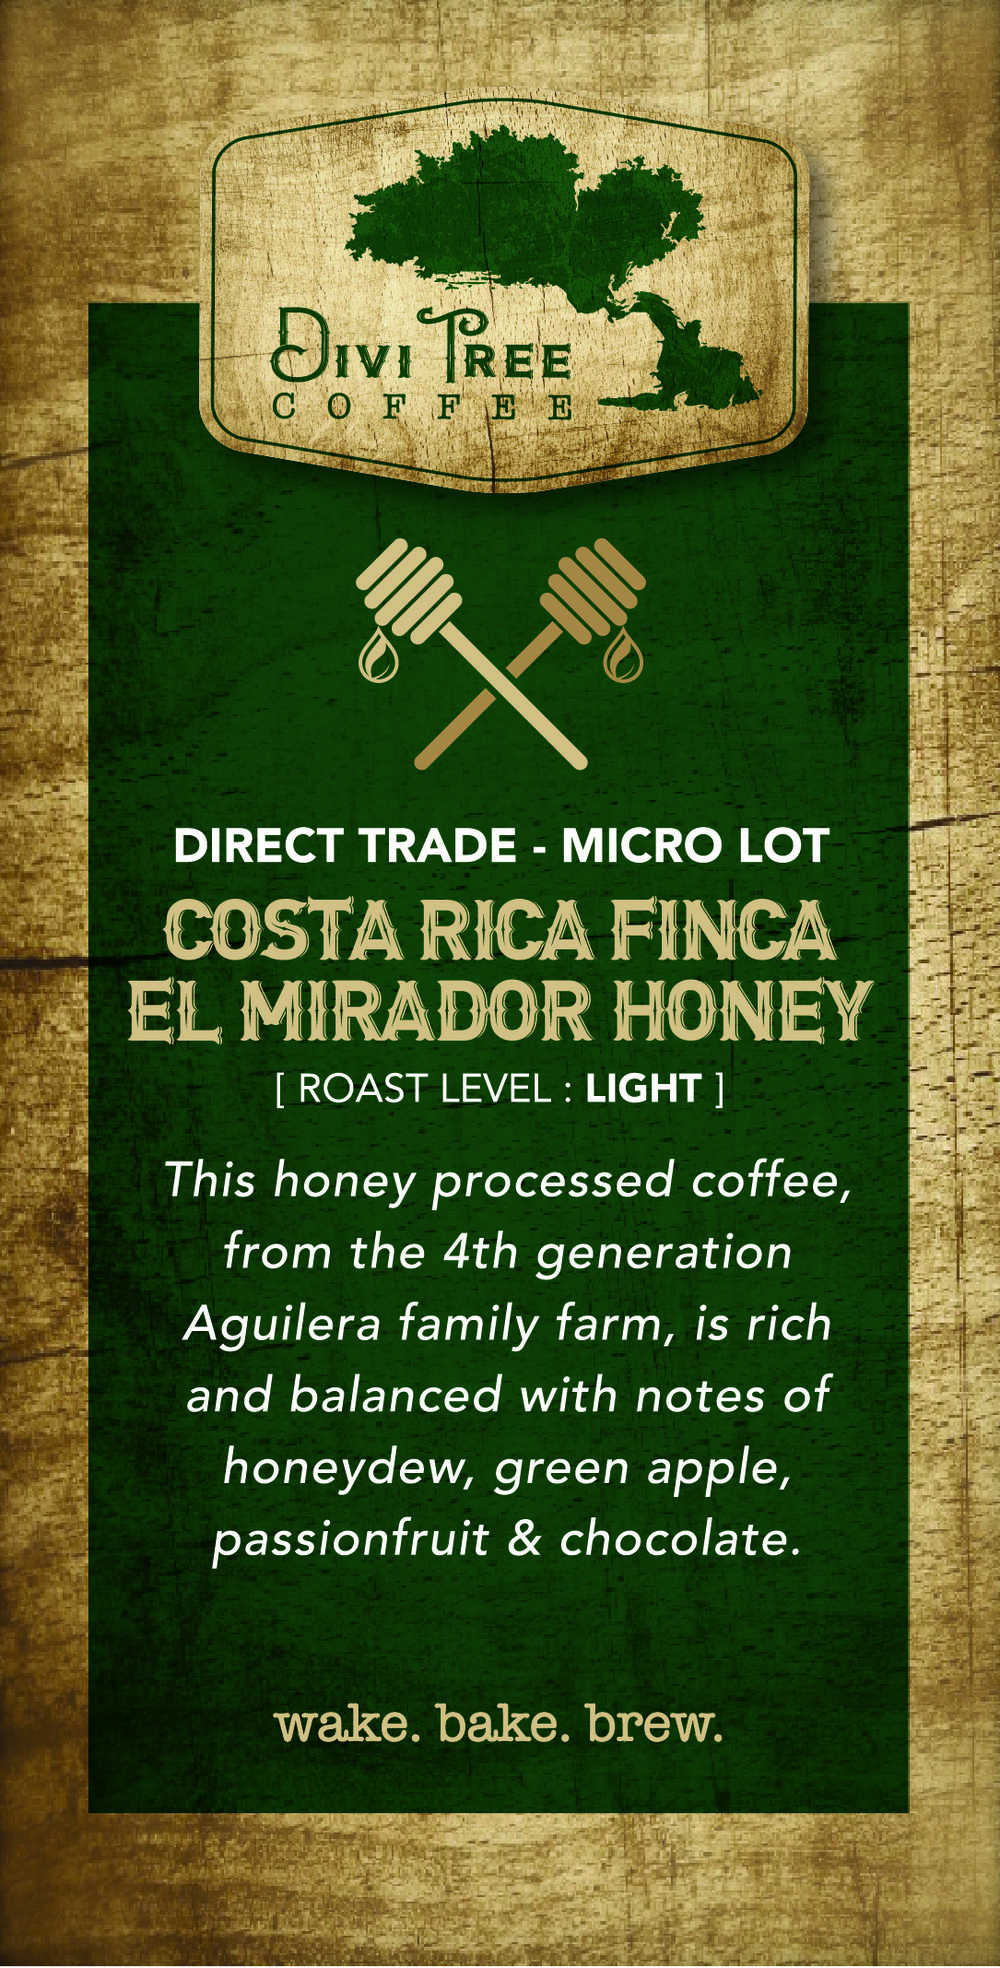 Costa Rica Finca - El Mirador Honey